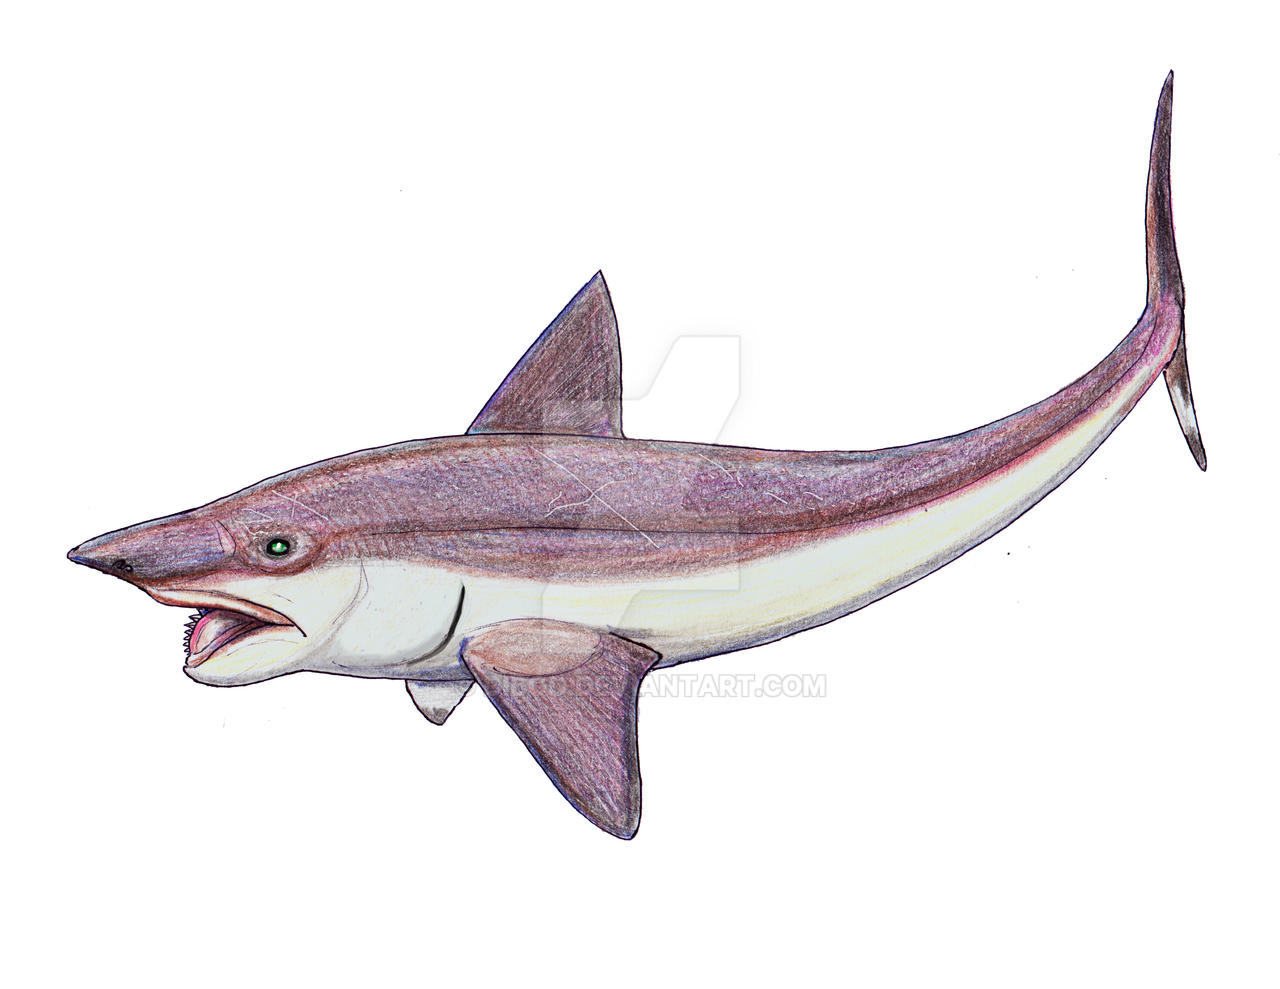 Helicoprion as chimeroid by DiBgd